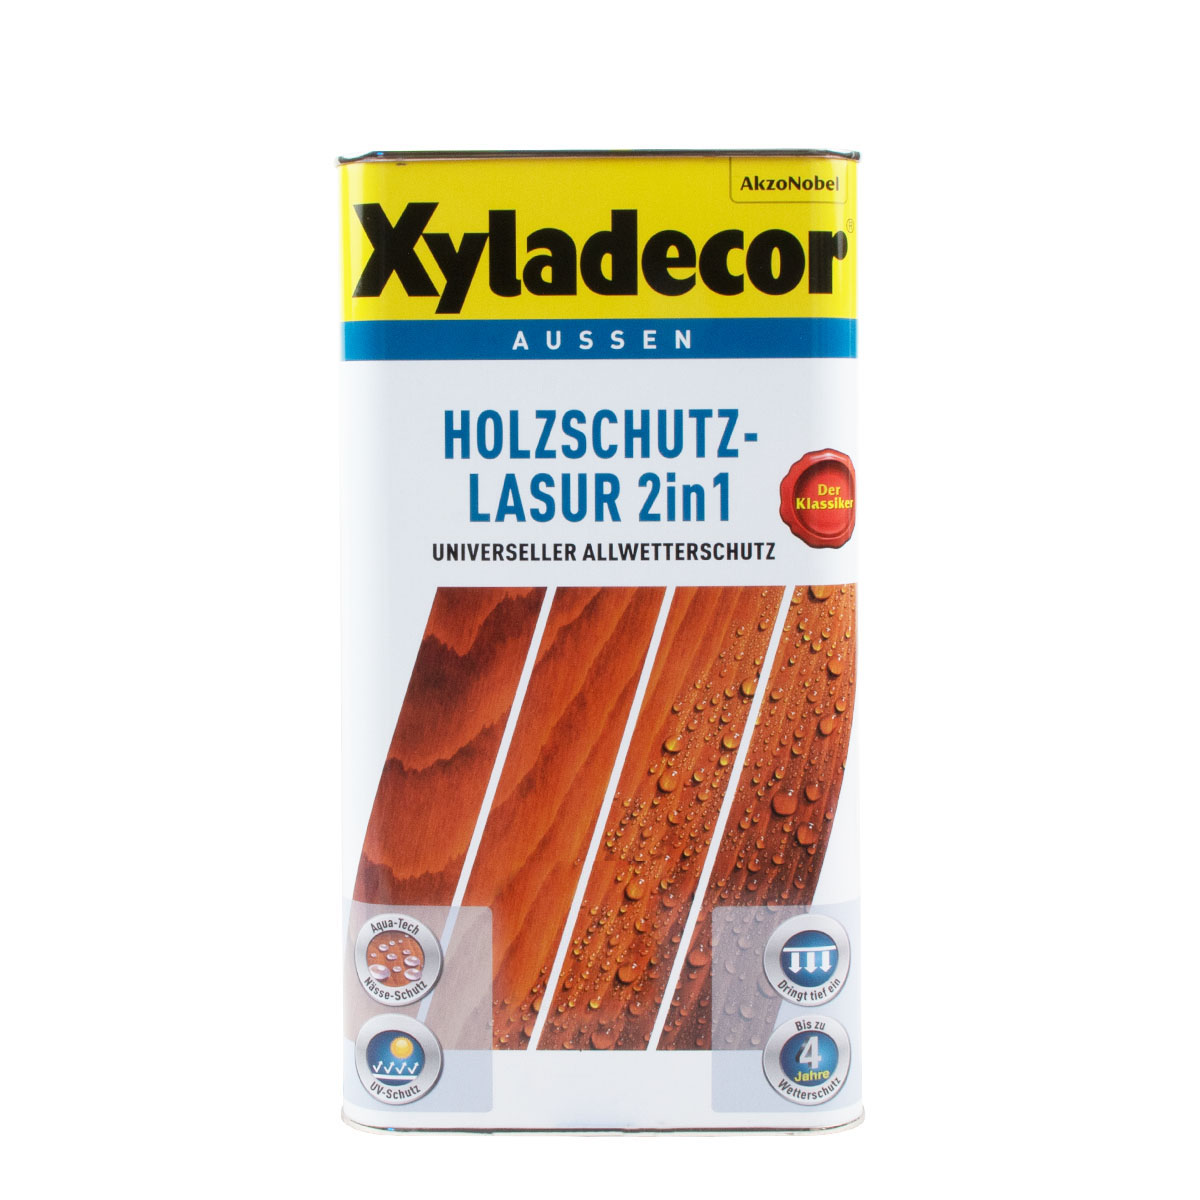 Xyladecor Holzschutz-Lasur 2in1 5L Eiche